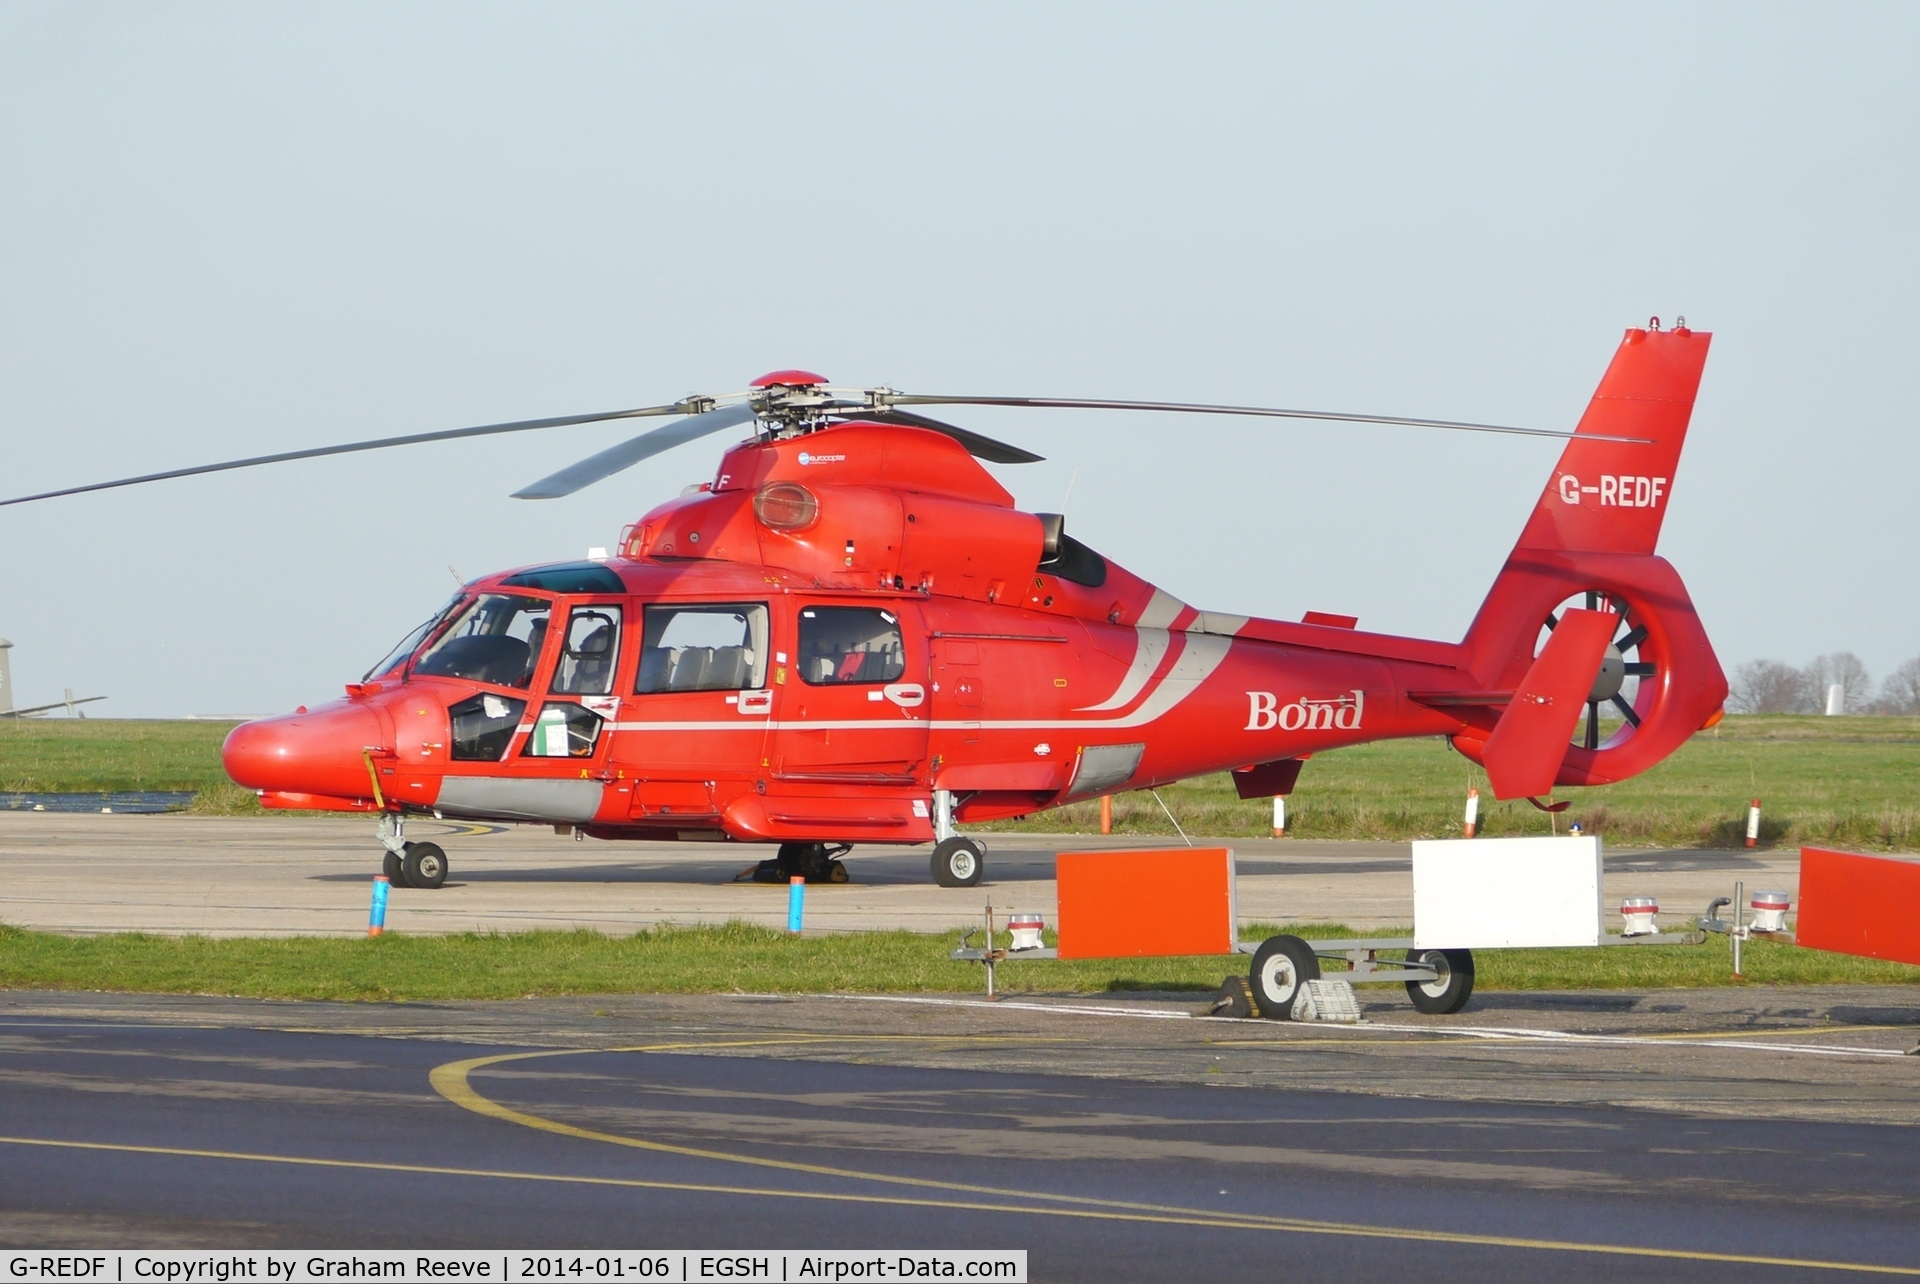 G-REDF, 2009 Eurocopter AS-365N-3 Dauphin 2 C/N 6884, Parked at Norwich.